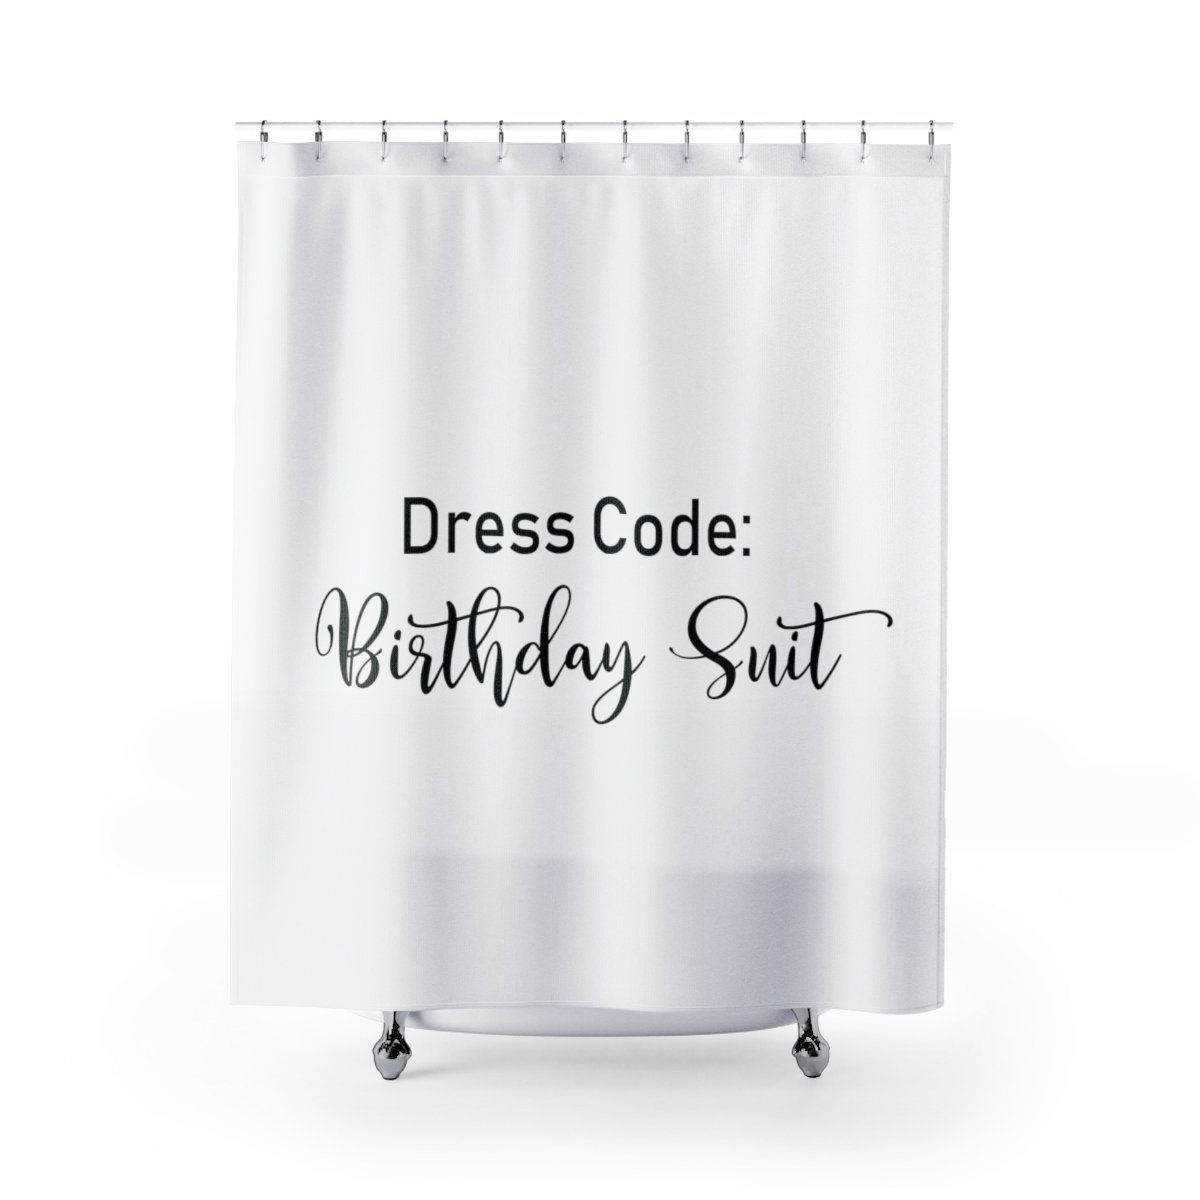 Dress Code Birthday Suit Shower Curtain Cool Shower Curtains